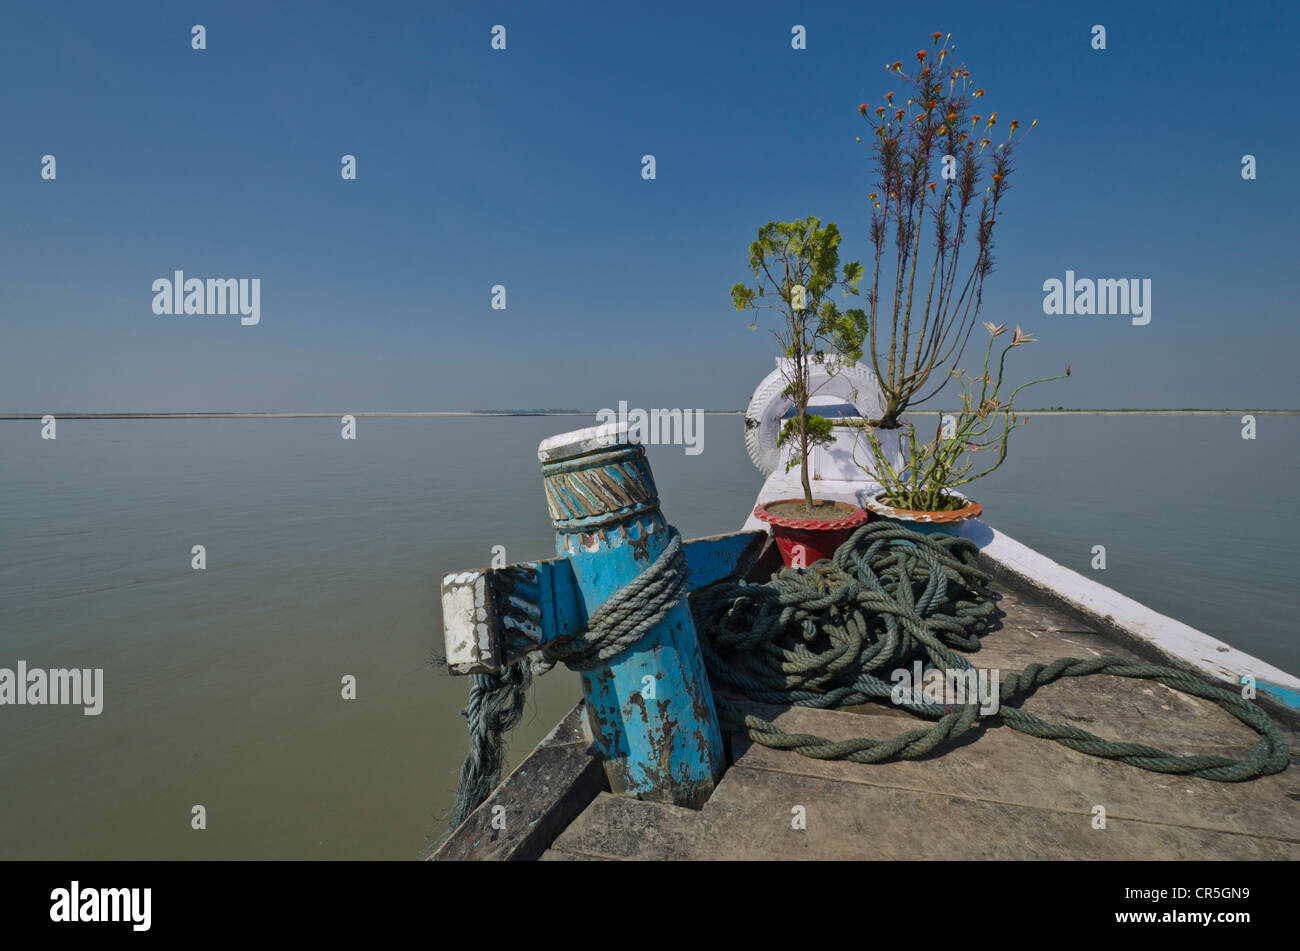 Bow of a rustic ferry-boat at Jorhat which takes more than one hour to cross the mighty Brahmaputra River, India, - Stock Image